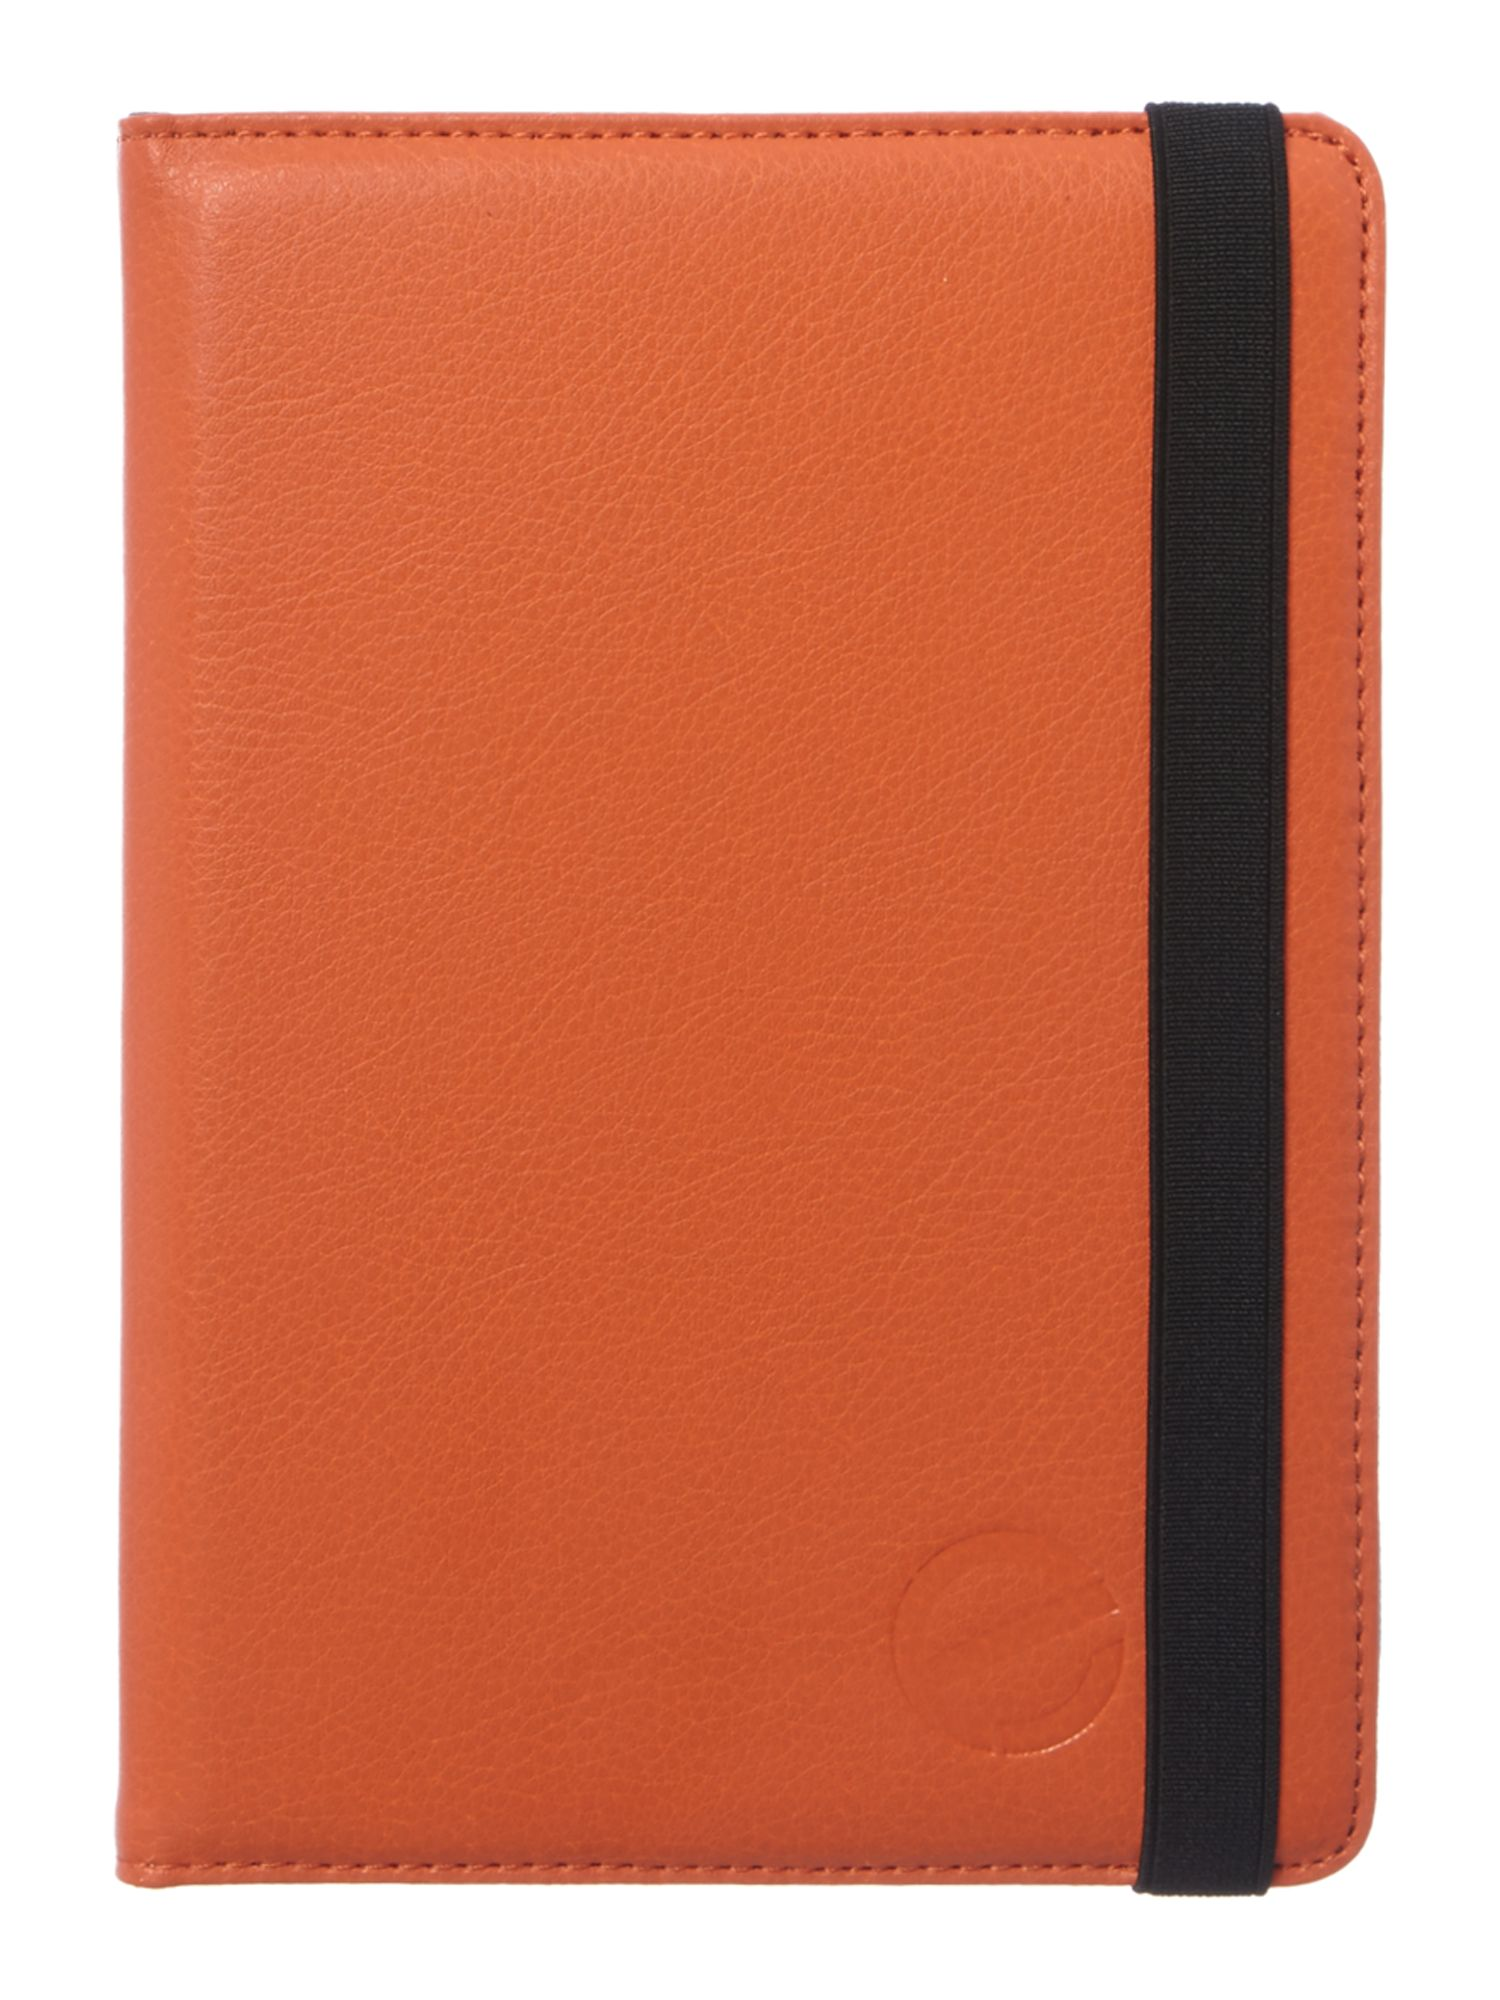 Orange 360 mini Ipad case